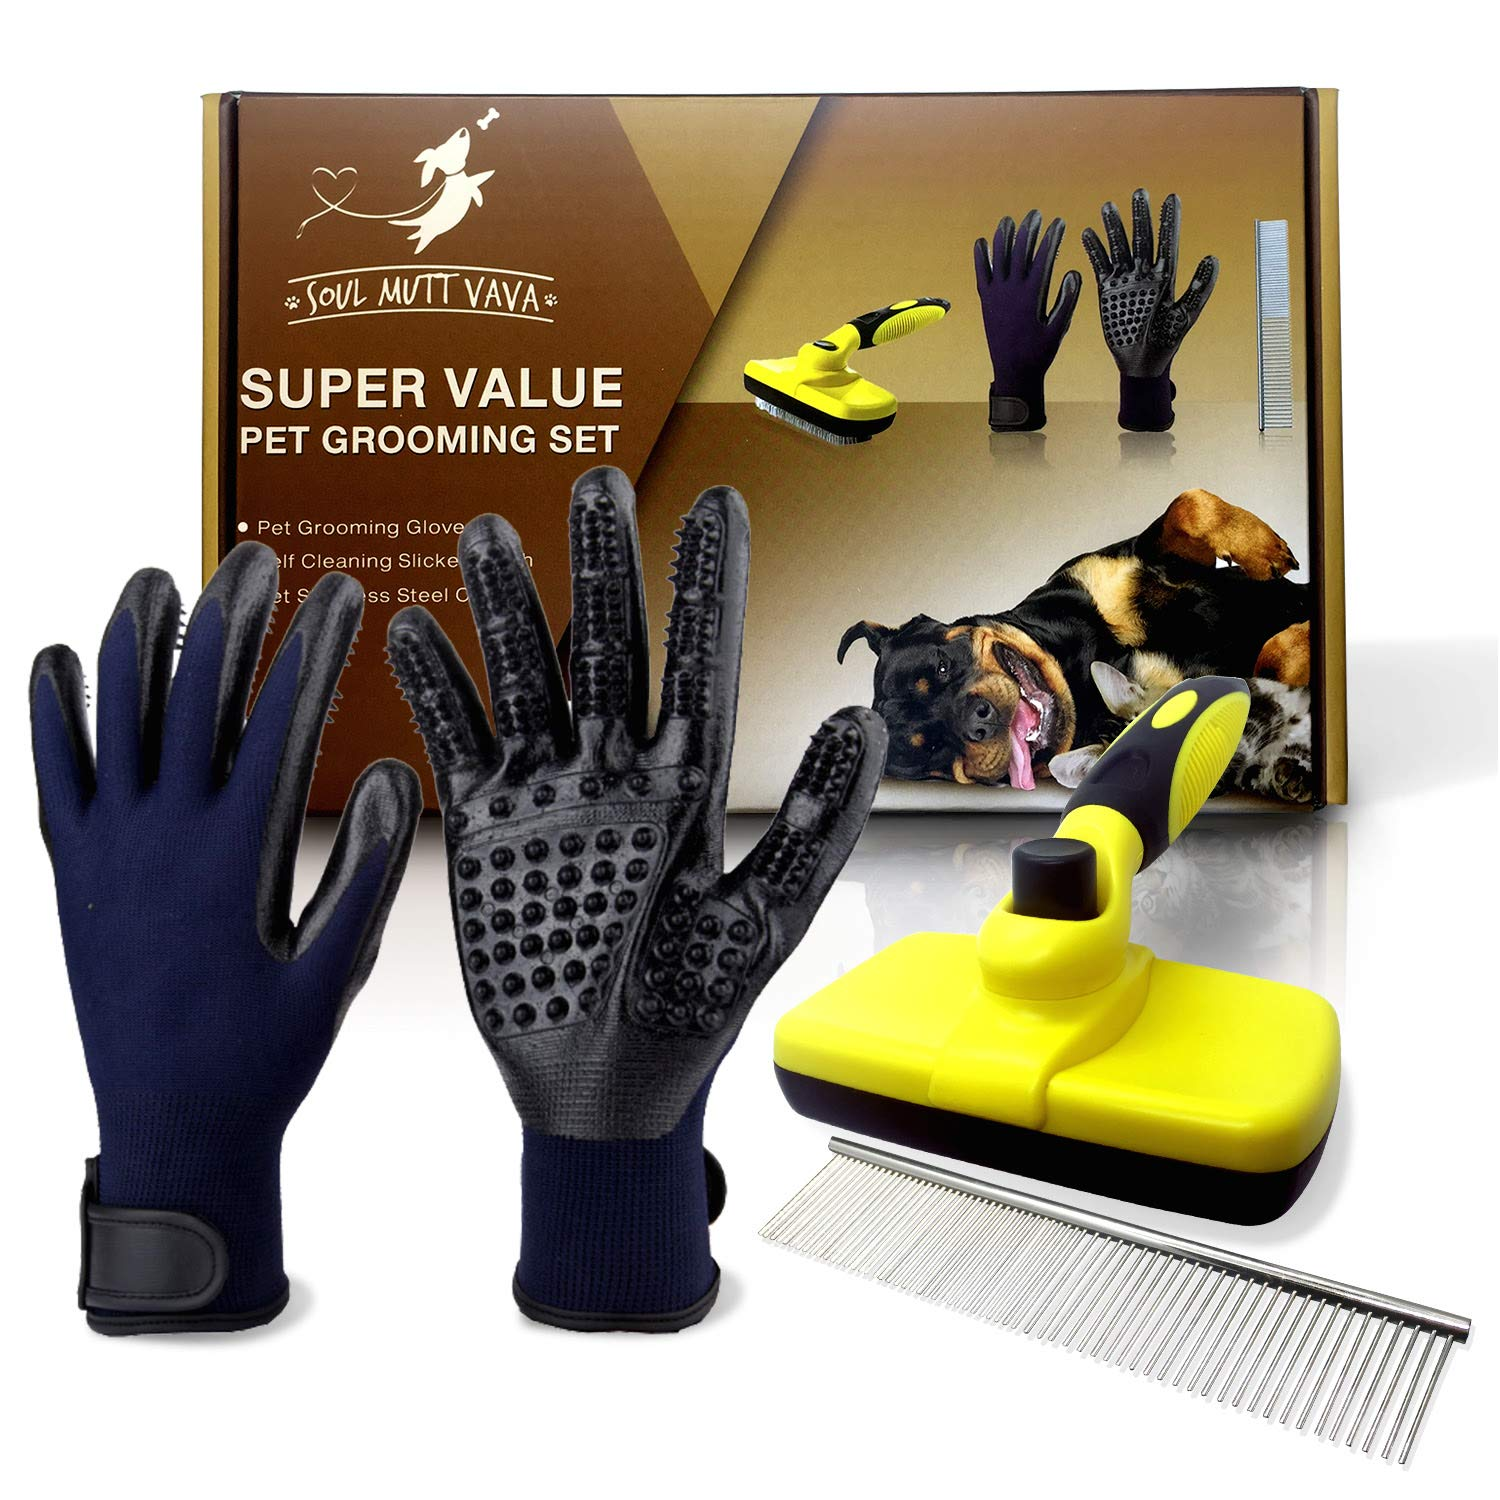 3 in 1 Pet Grooming Set,Self Cleaning Slicker Brush,Pet Comb and 1 Pair Pet grooming Gloves-Right & Left Hands,Anti Shedding Pet Hair Remover for Dogs & Cats,Deshedding Fur,Long & Short Hair,Undercoat by SOUL MUTT VAVA (Image #1)